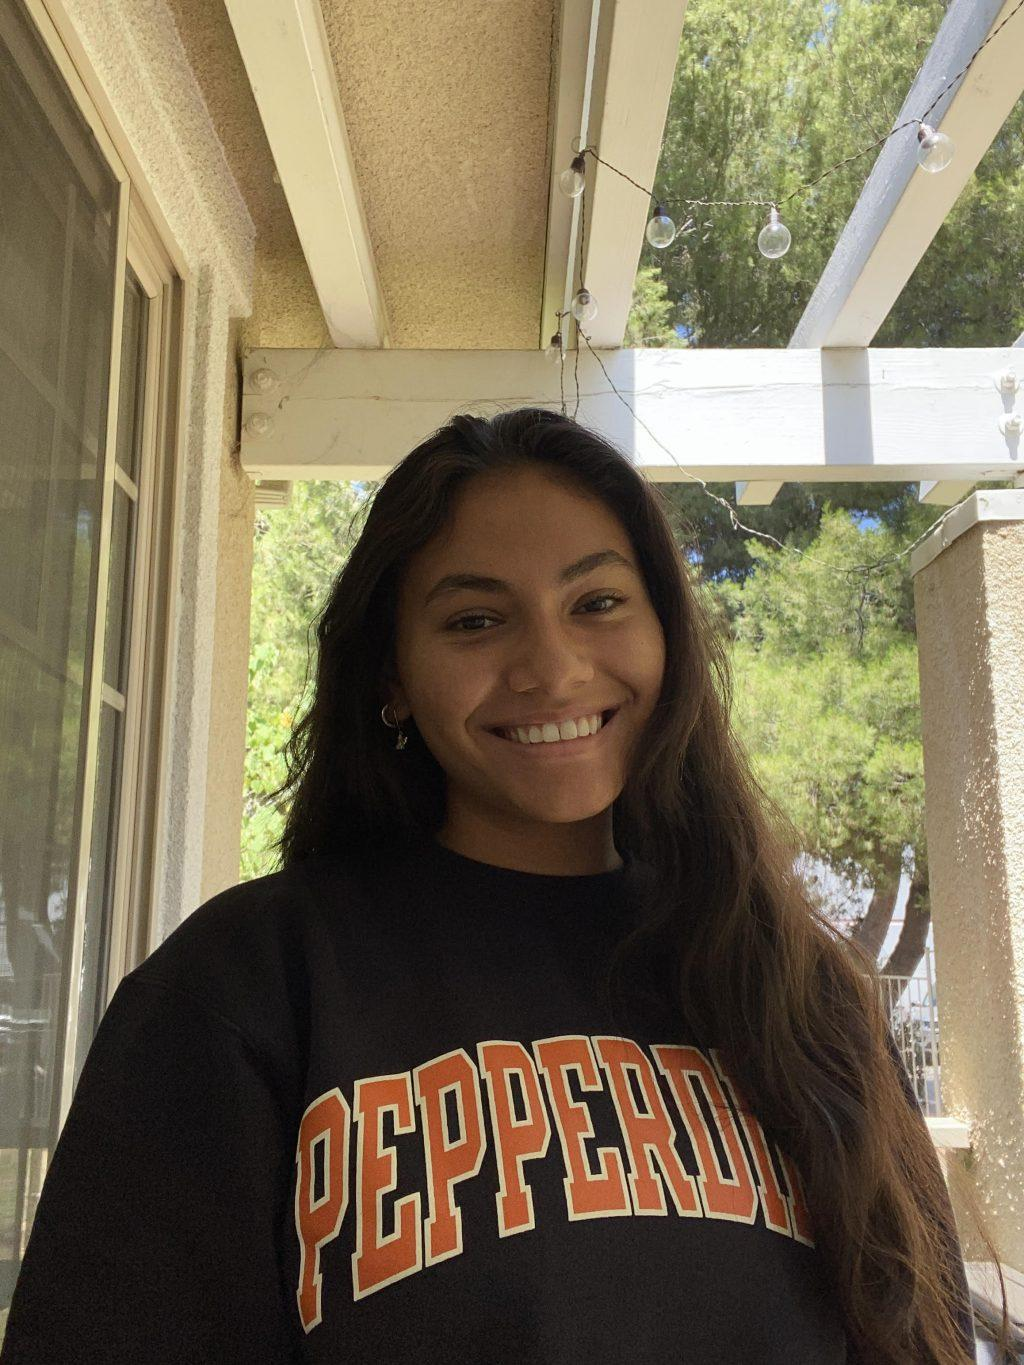 A cheerful Taura reps her university's sweatshirt outside of her home. She said she expressed joy about her acceptance.